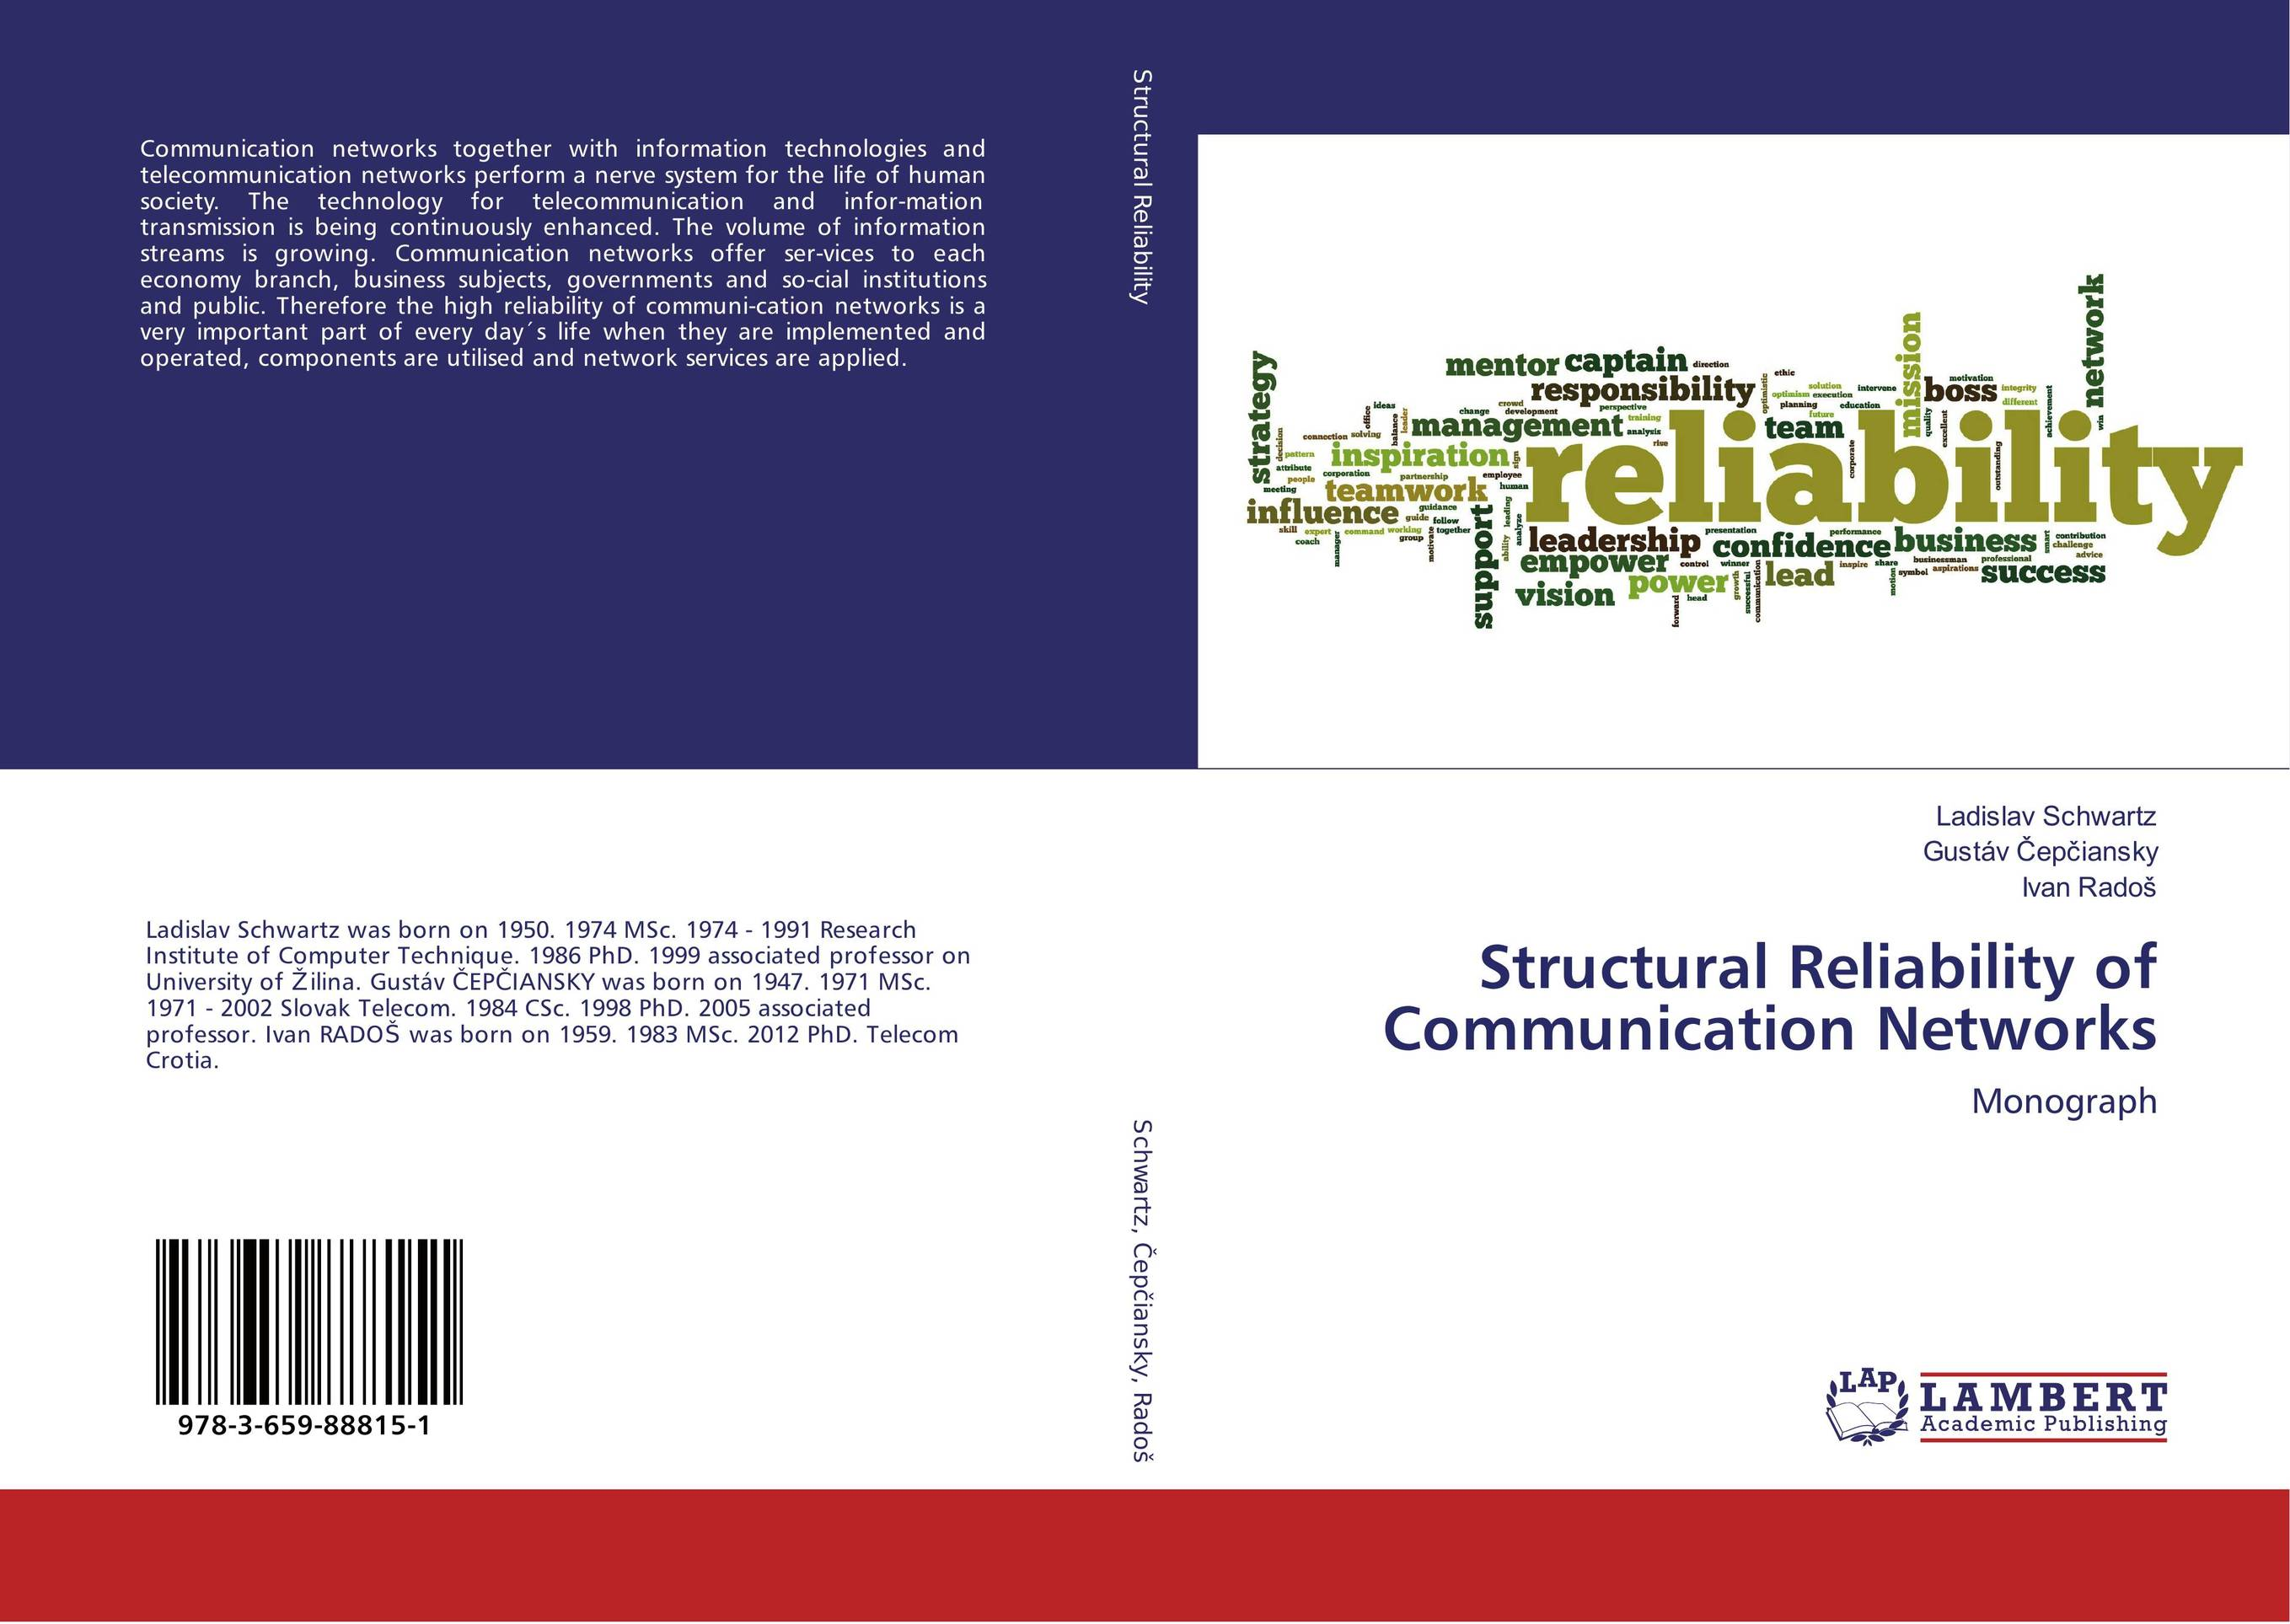 Structural Reliability of Communication Networks